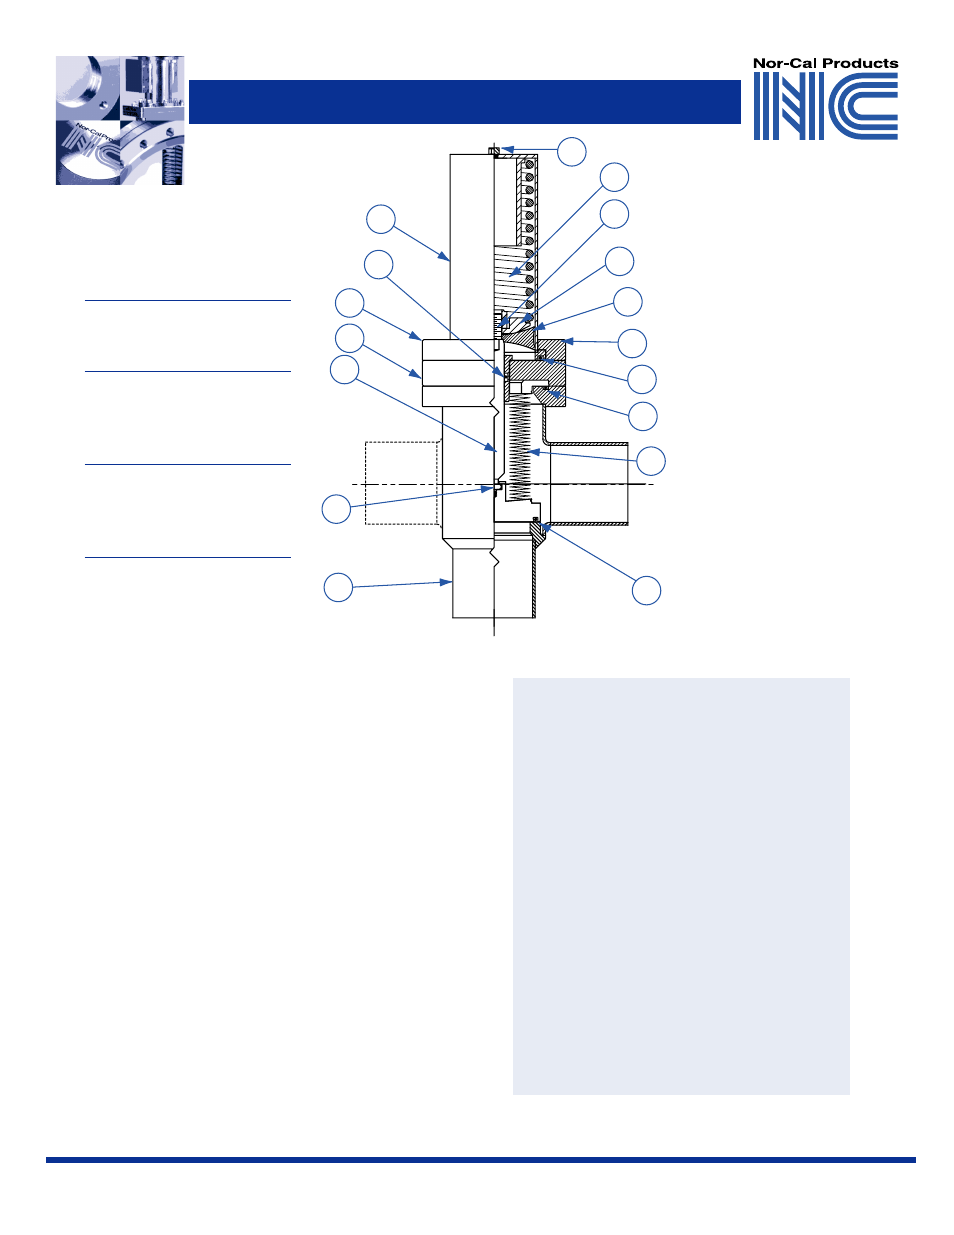 Repair Instructions Valve Cutaway Diagram Warranty Nor Cal Angle Air Cylinder Schematic Valves User Manual Page 3 4